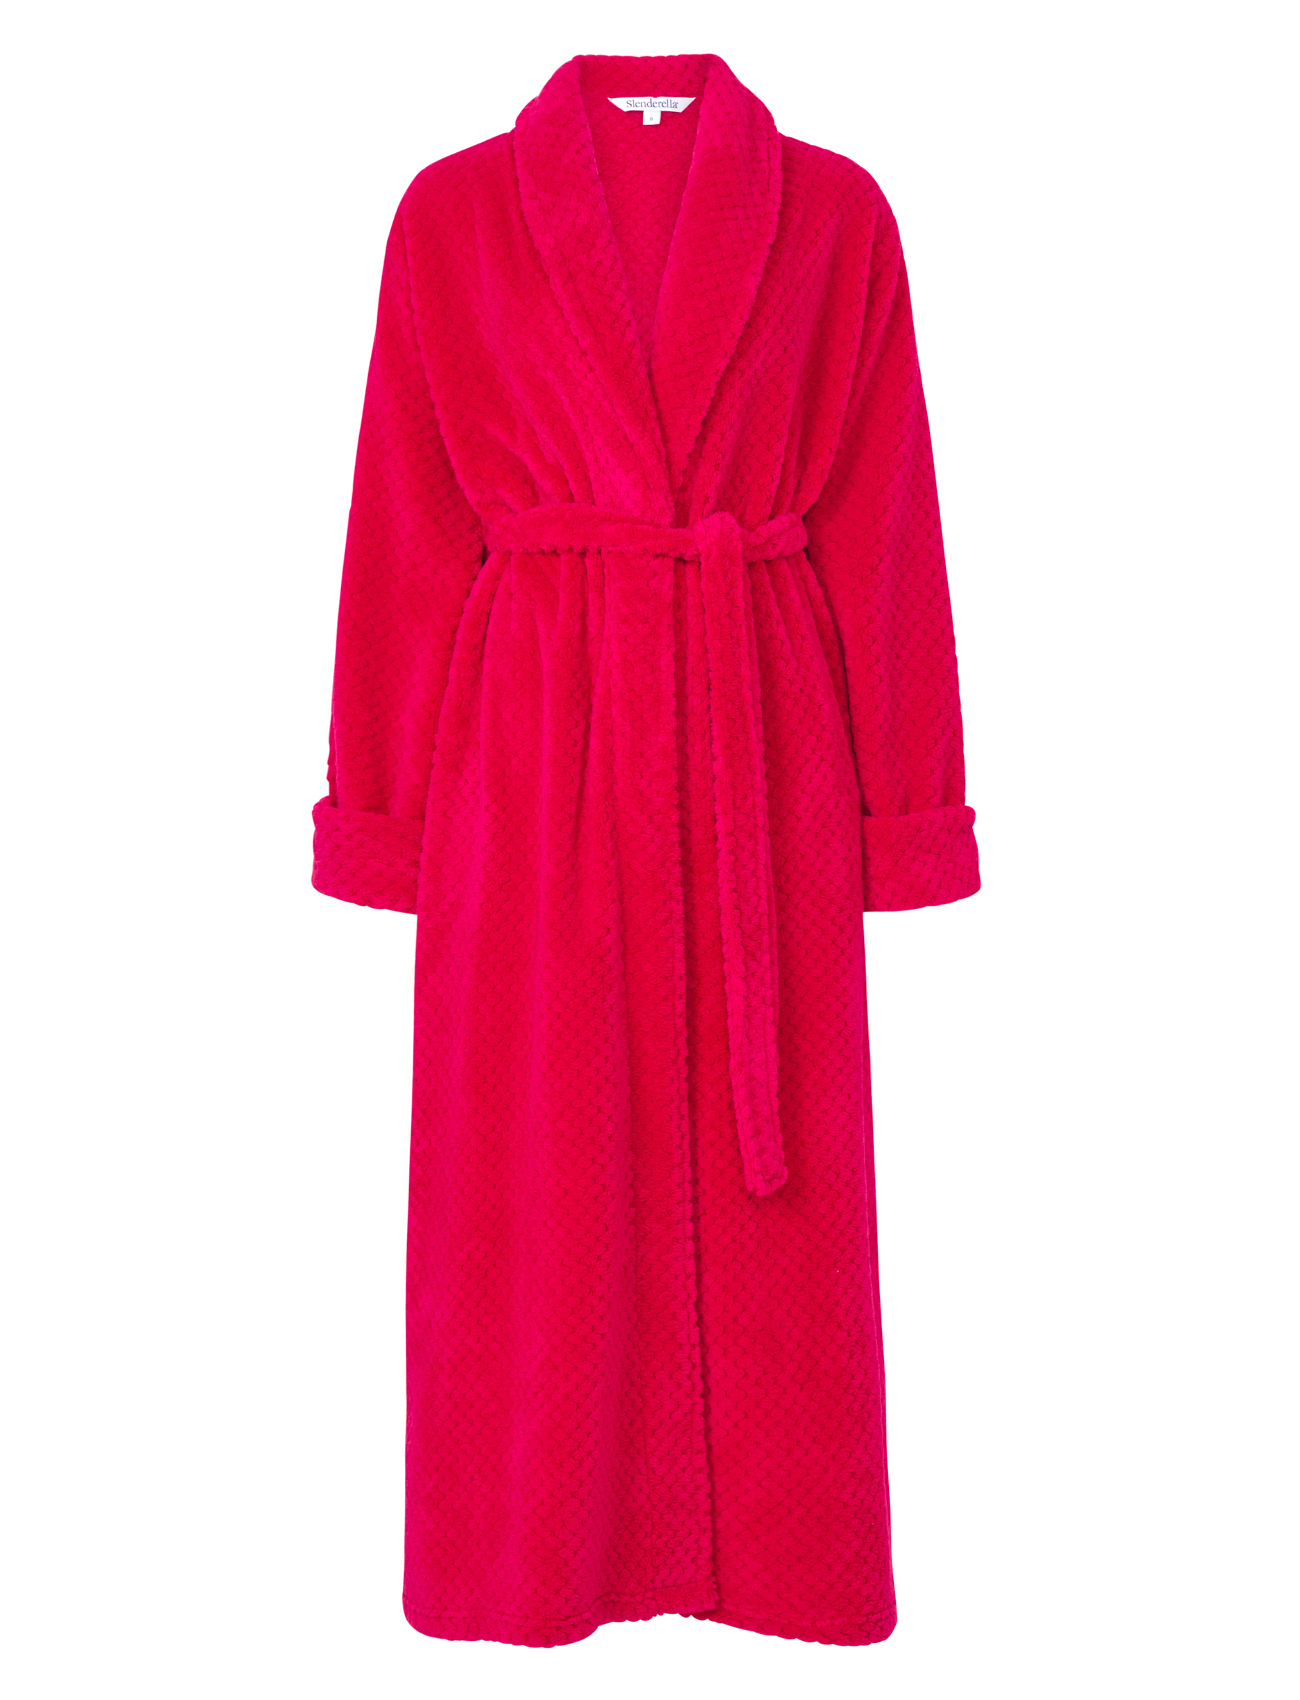 Soft Waffle Fleece Bed Jacket Or Dressing Gown Robe Ladies